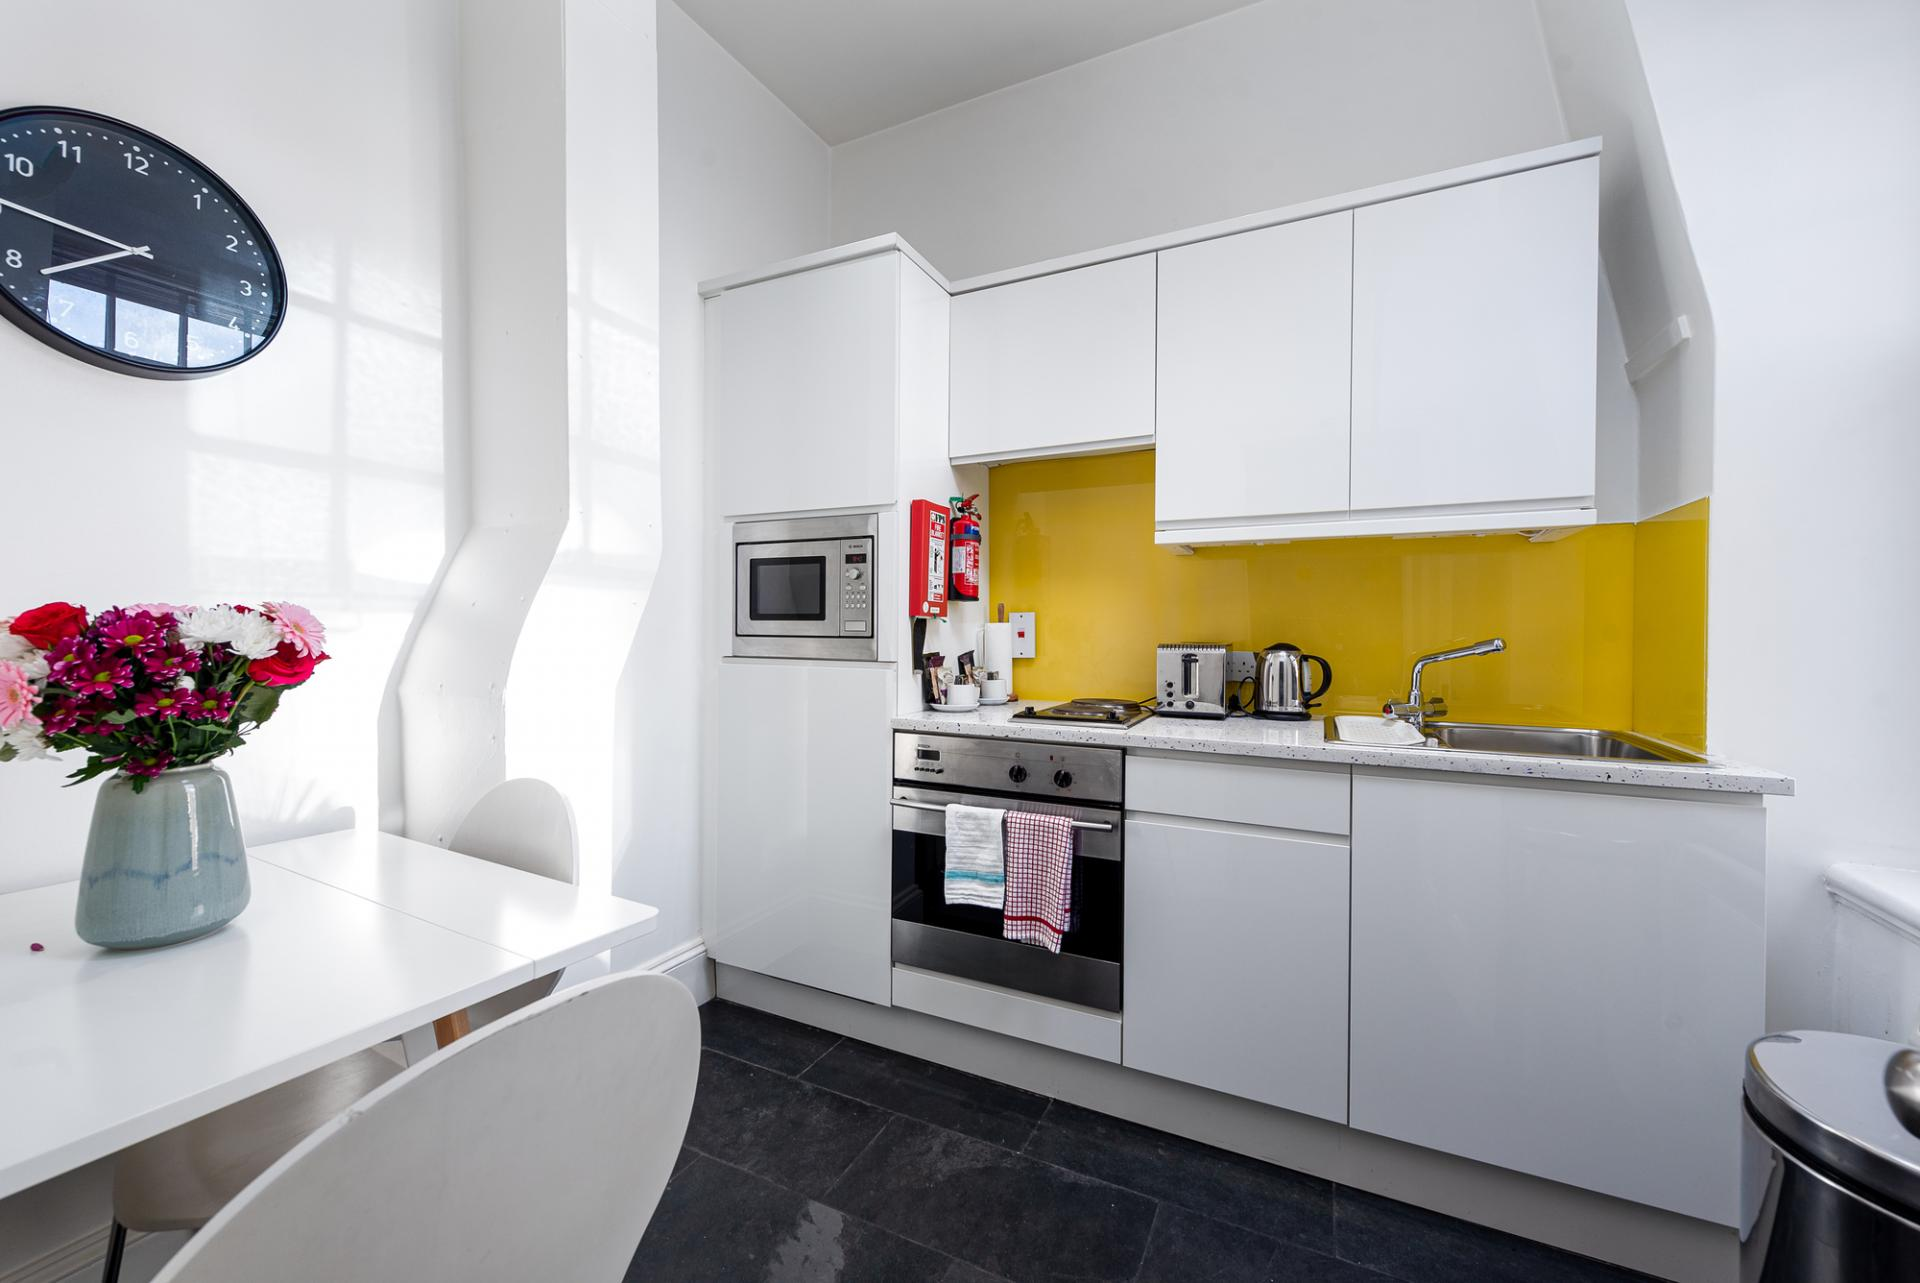 Kitchen at Draycott Place Serviced Apartments, Chelsea, London